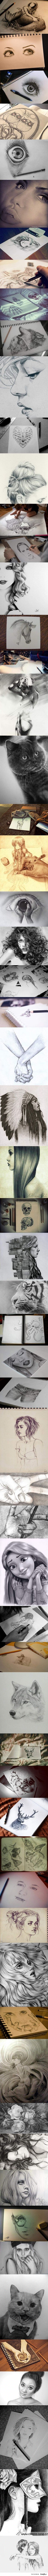 Amazing drawings!!! some are a bit strange but drawn well